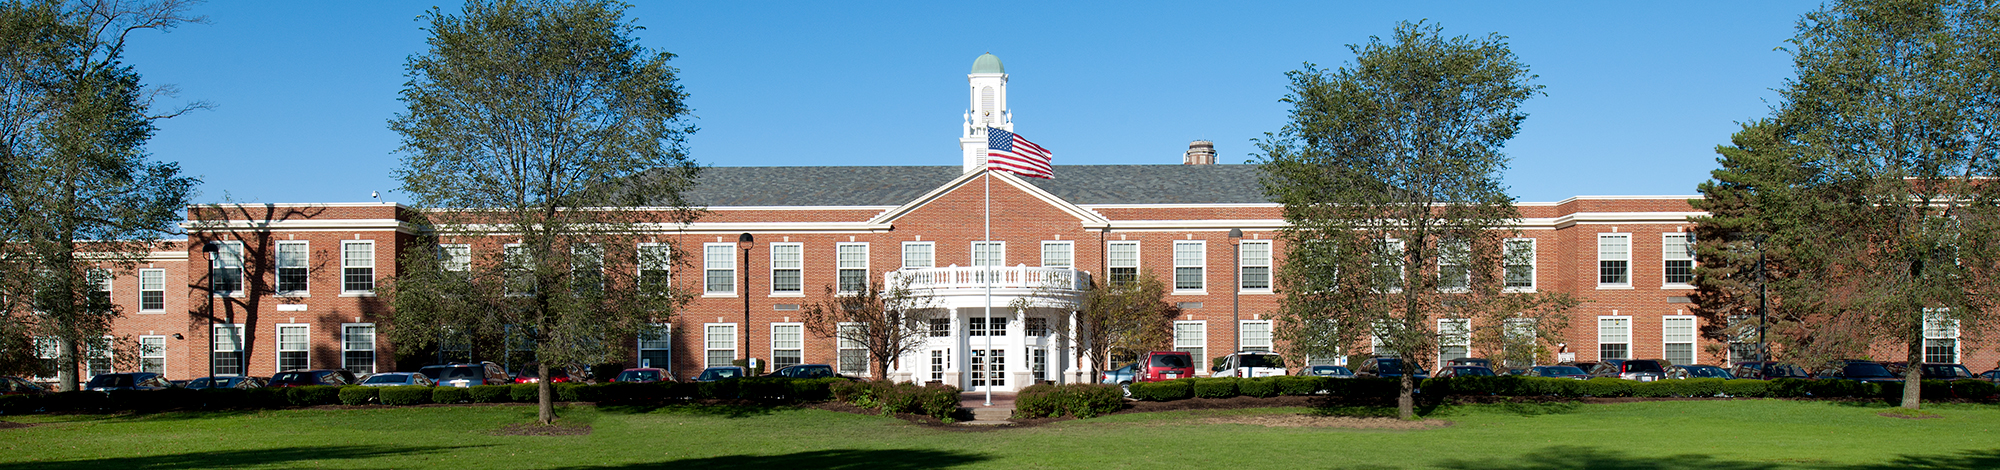 shaker heights high school